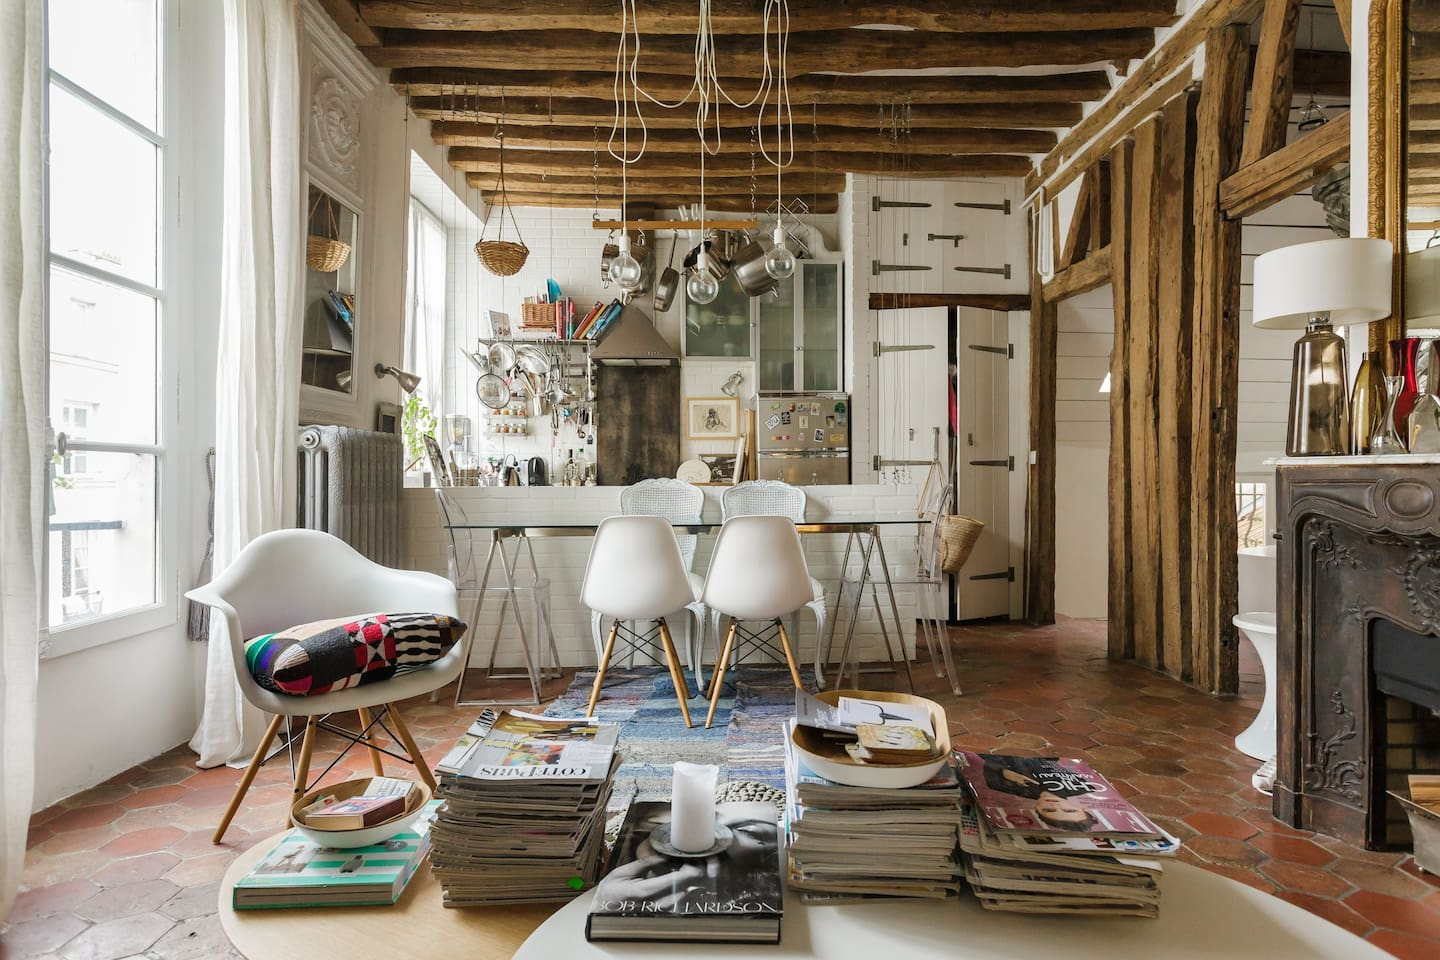 Dream apartment to stay in Paris according to the famous ELLE magazine